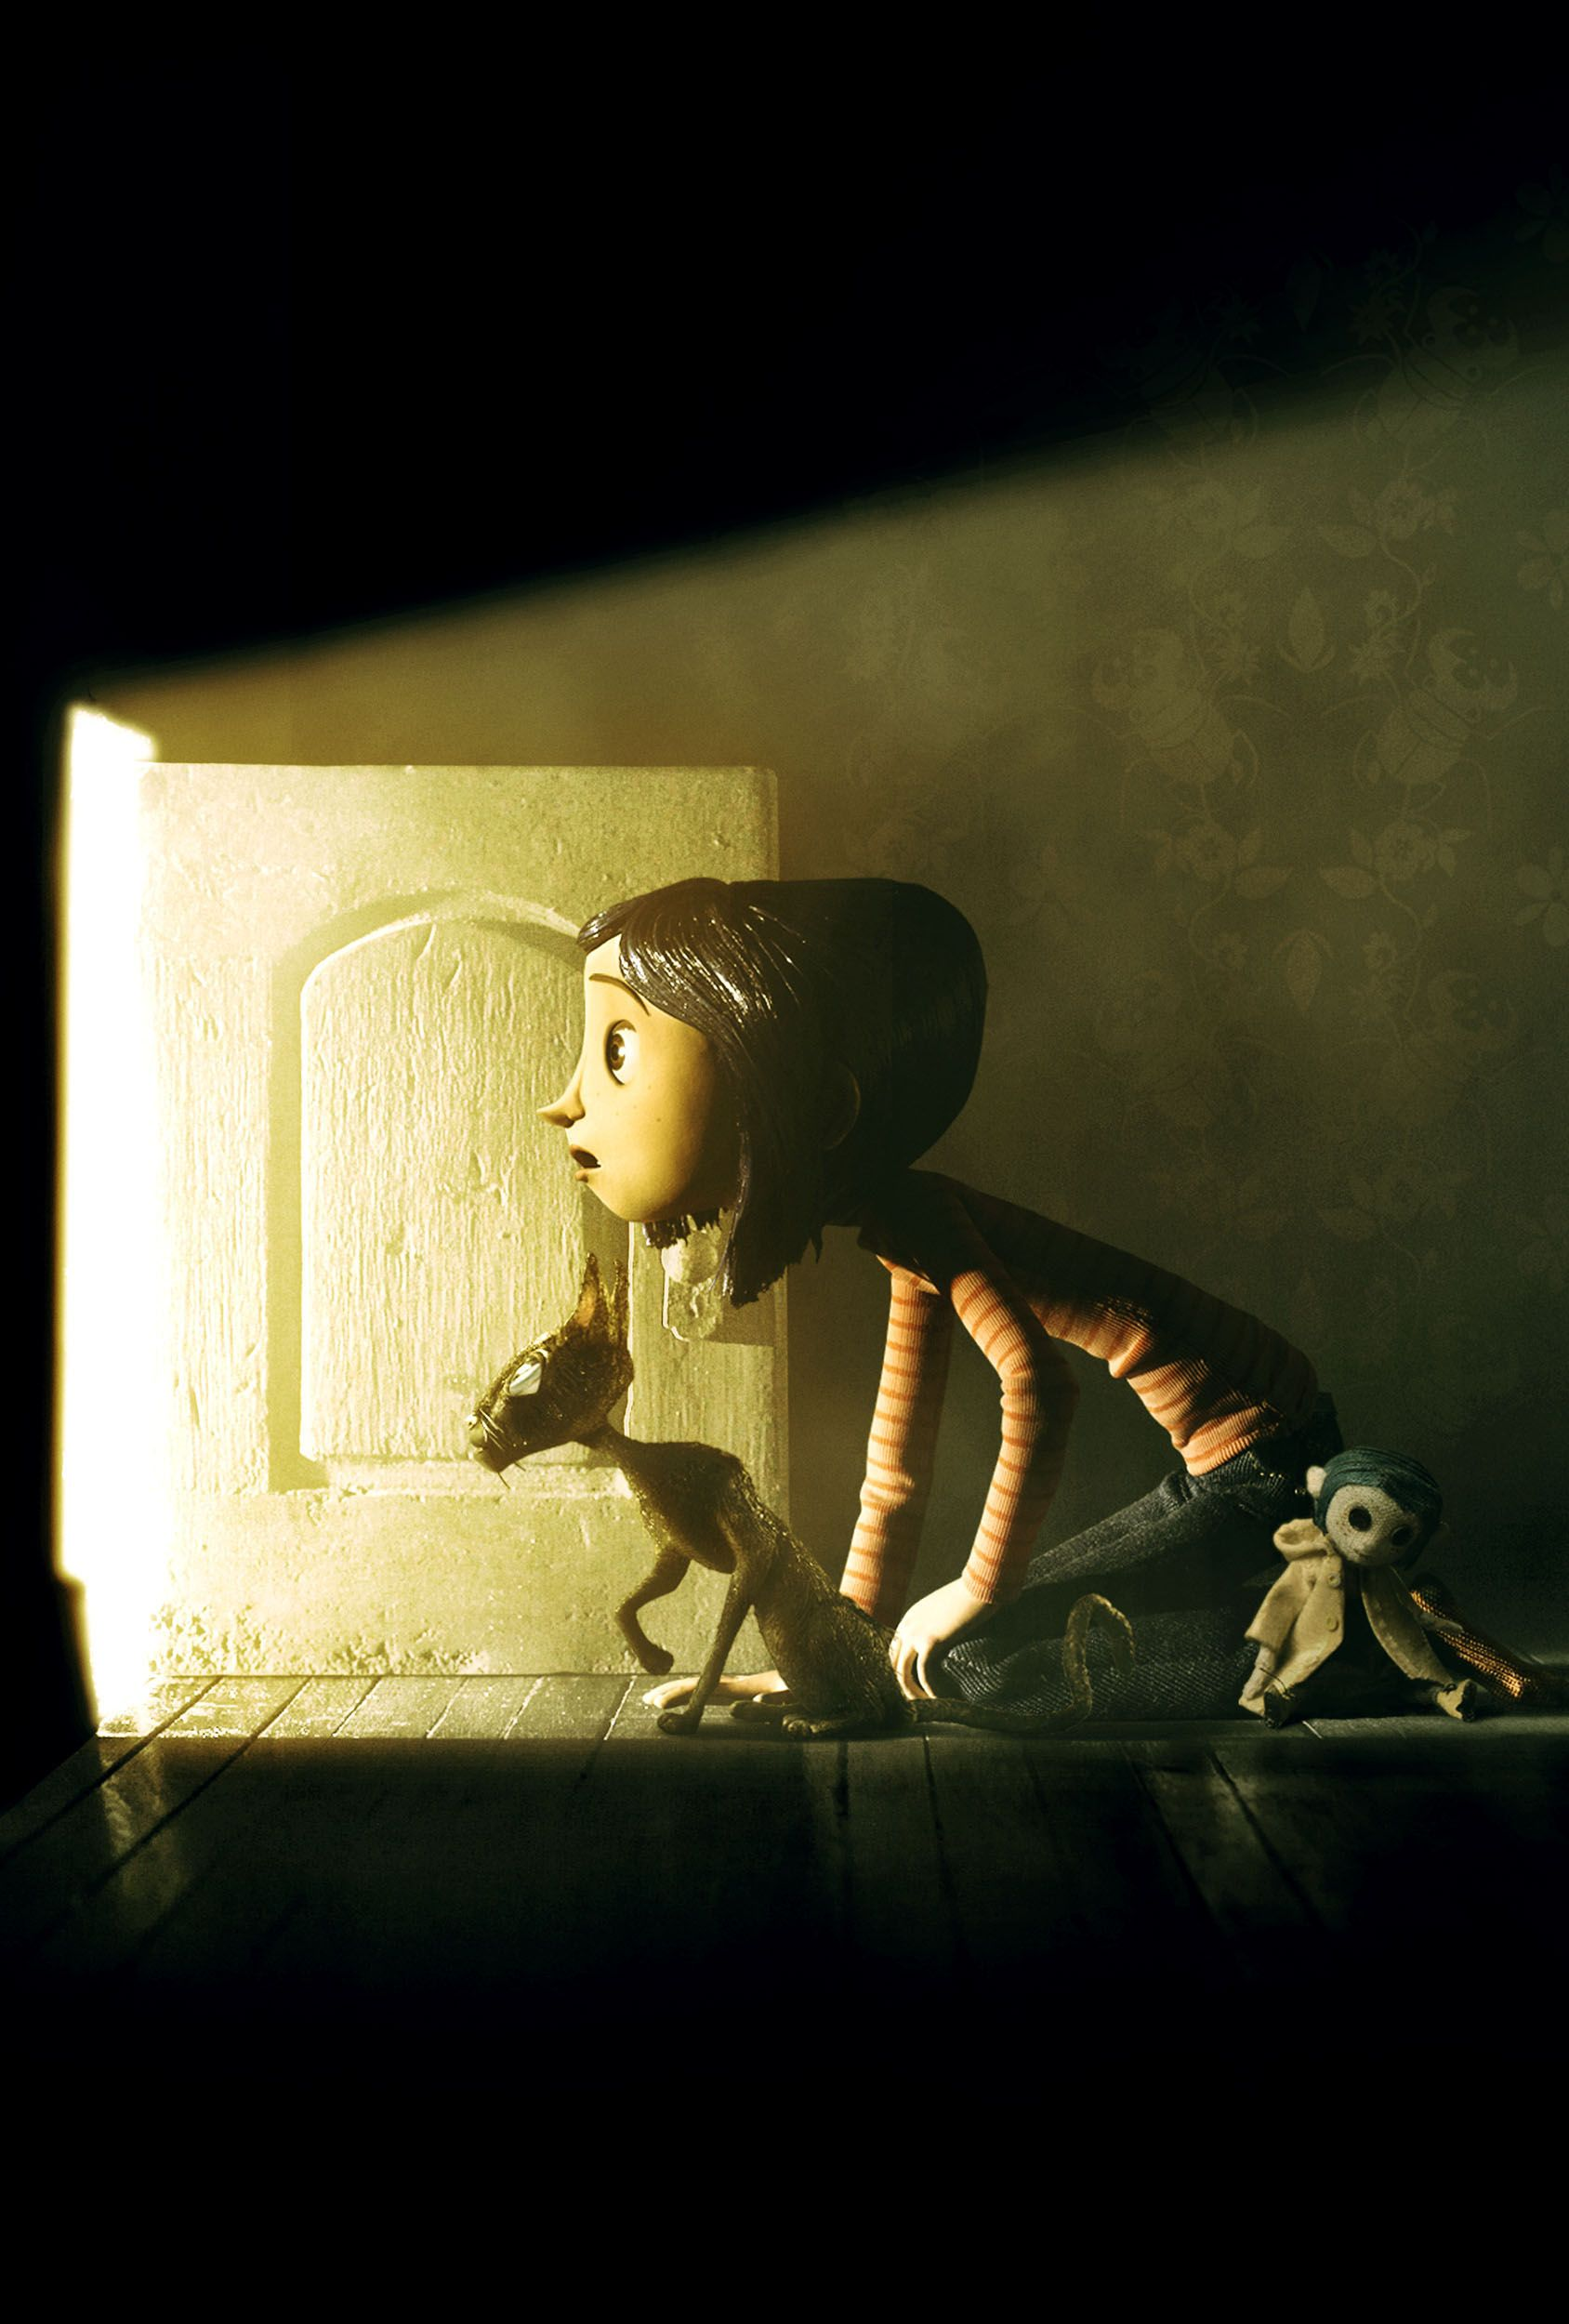 Coraline I Watched This For The First Time The Other Day And Was Surprised At How The Start Of The Book Is Remark Coraline Jones Stop Motion Tim Burton Movie